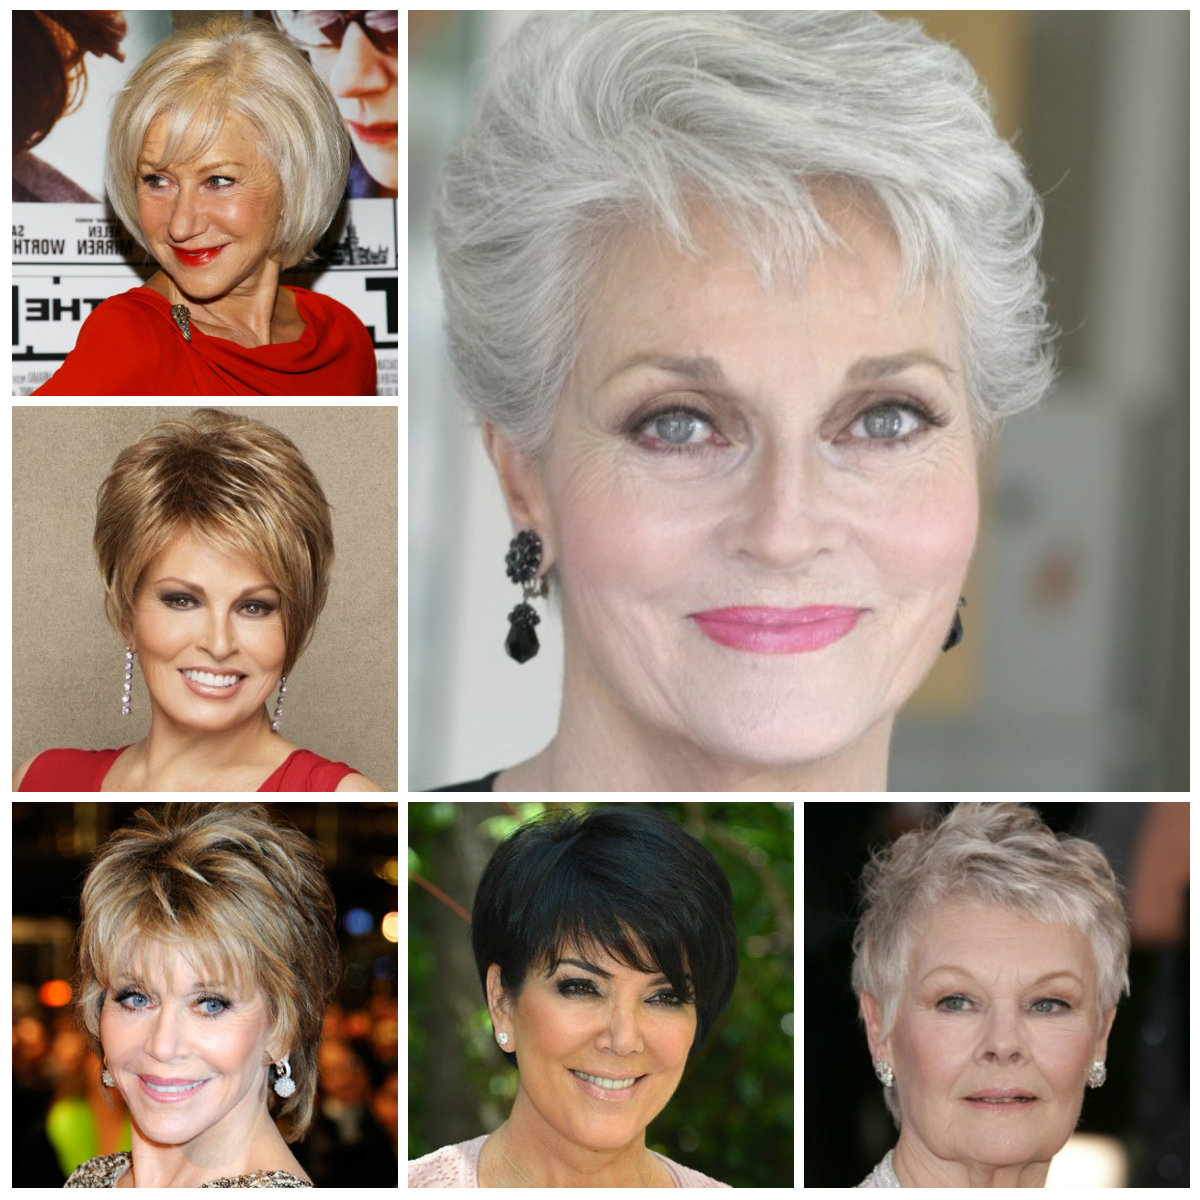 Hairstyles For Mature Women   2019 Haircuts, Hairstyles And Hair Colors Pertaining To Short Hairstyles For Mature Women (View 20 of 25)